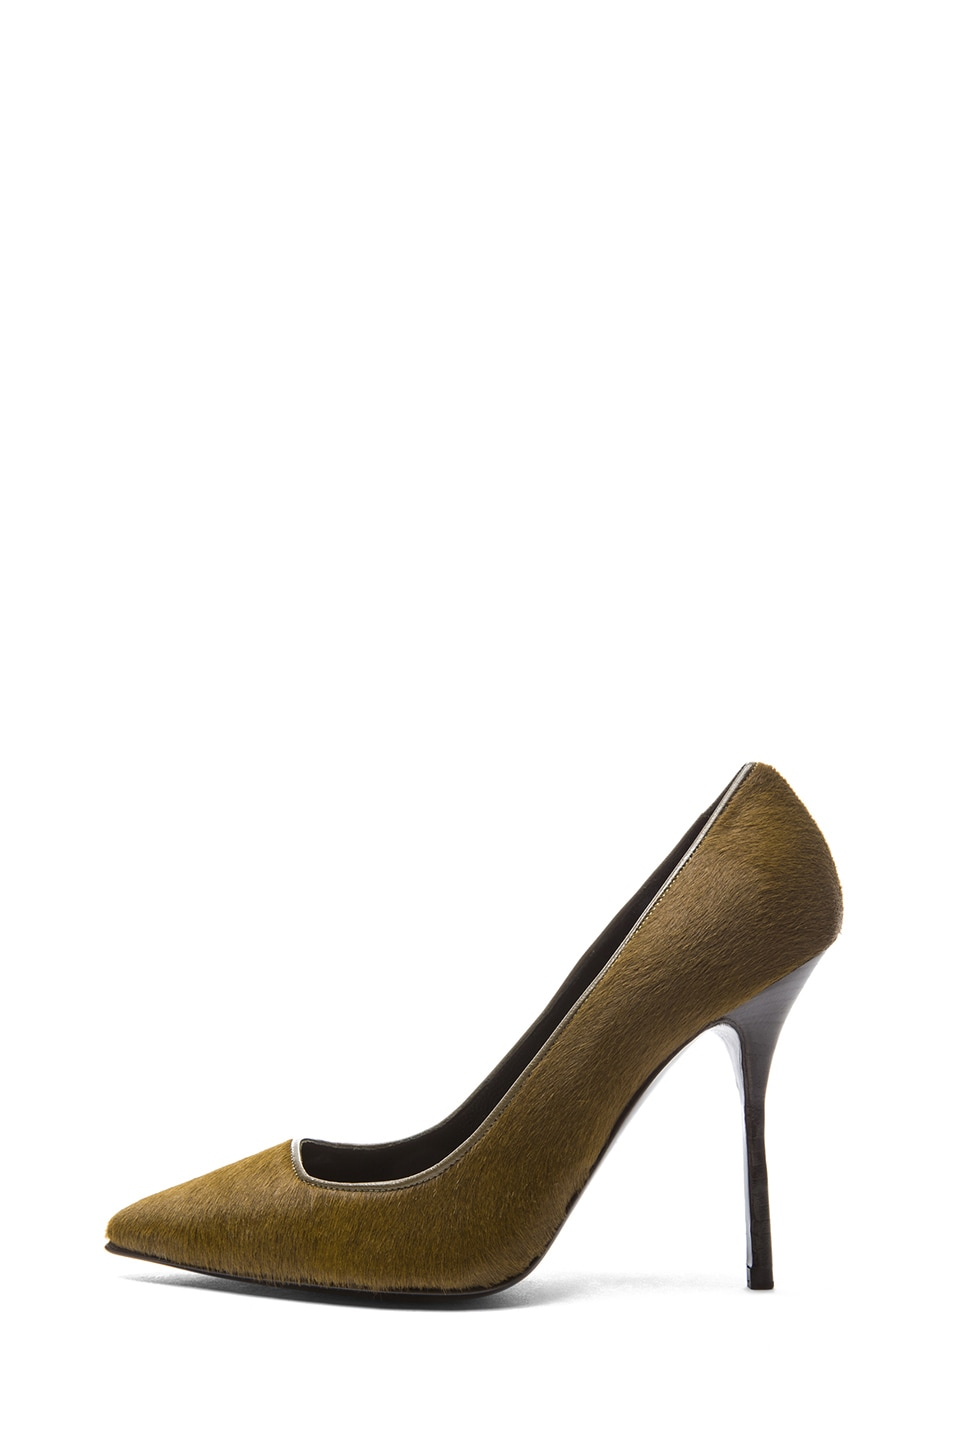 Image 1 of Pierre Hardy Calf Hair Pumps in Kaki